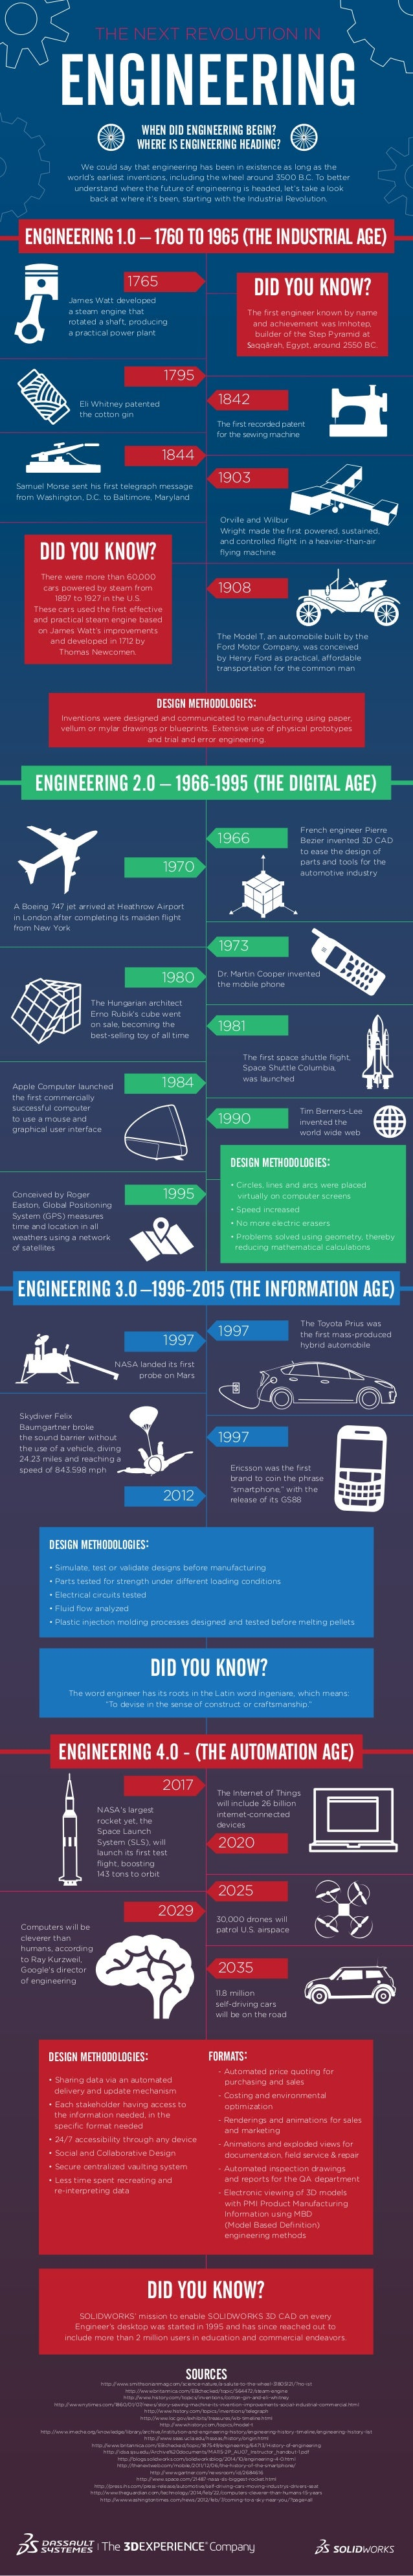 ENGINEERING 1795 1844 1765 1842 1903 1908 DID YOU KNOW? The first engineer known by name and achievement wasImhotep, build...